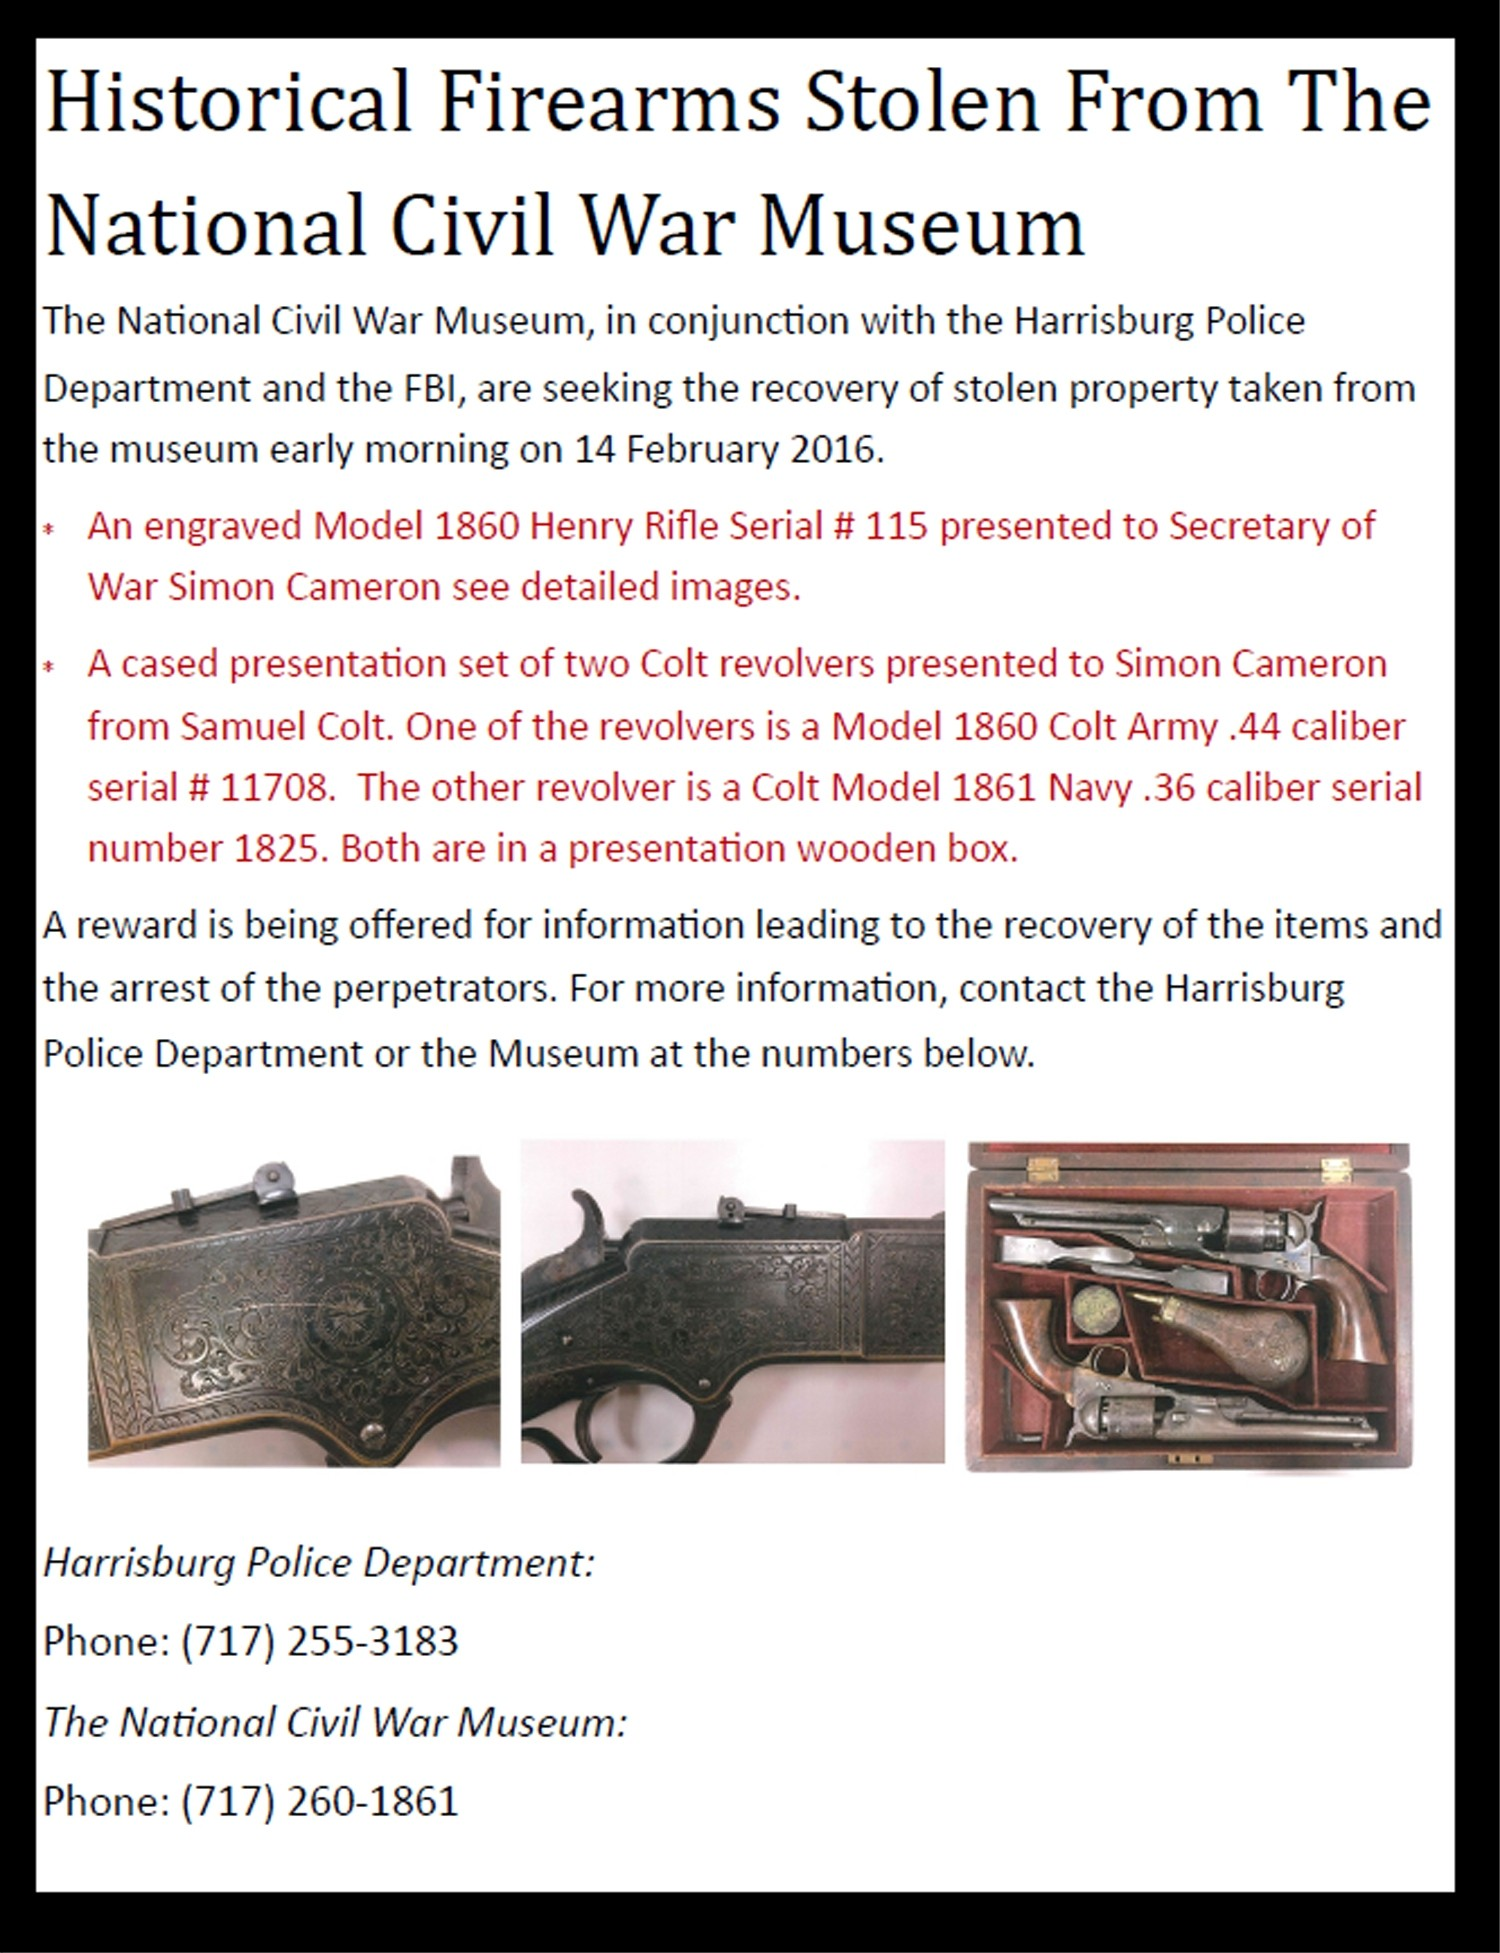 HISTORICAL FIREARMS STOLEN FROM THE NATIONAL CIVIL WAR MUSEUM IN